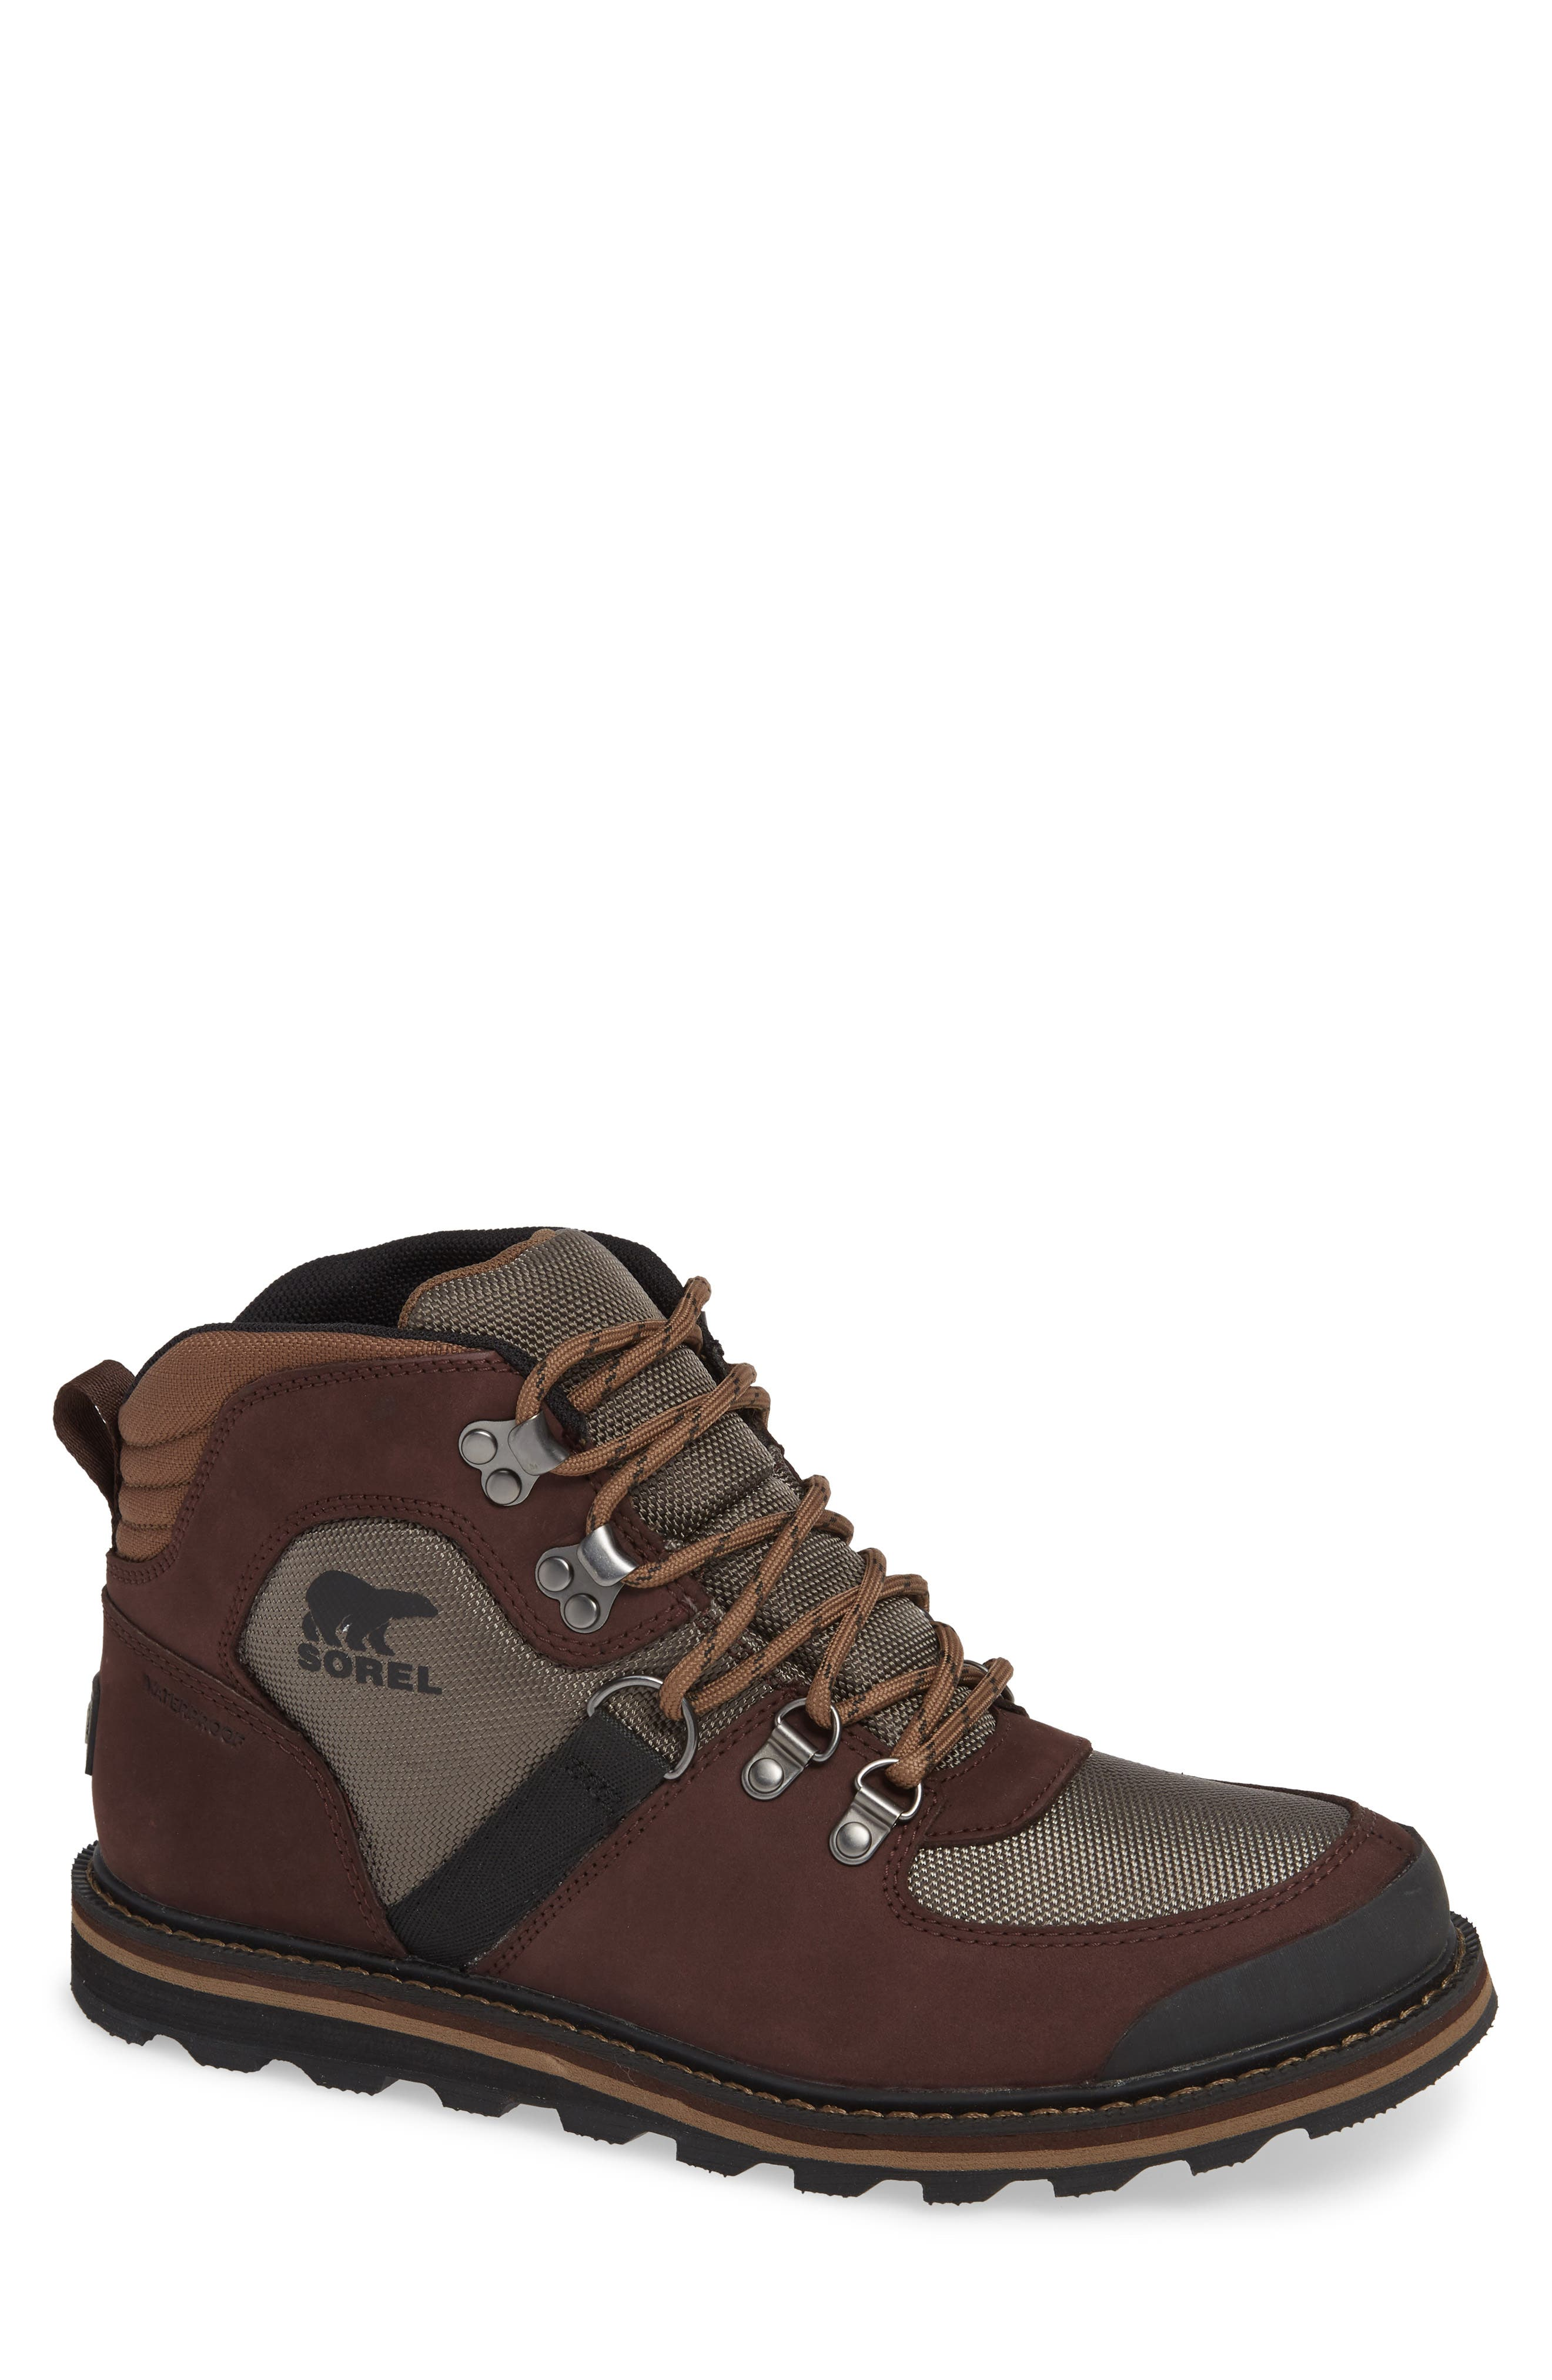 Madson Sport Waterproof Hiking Boot,                             Main thumbnail 1, color,                             MUD BROWN